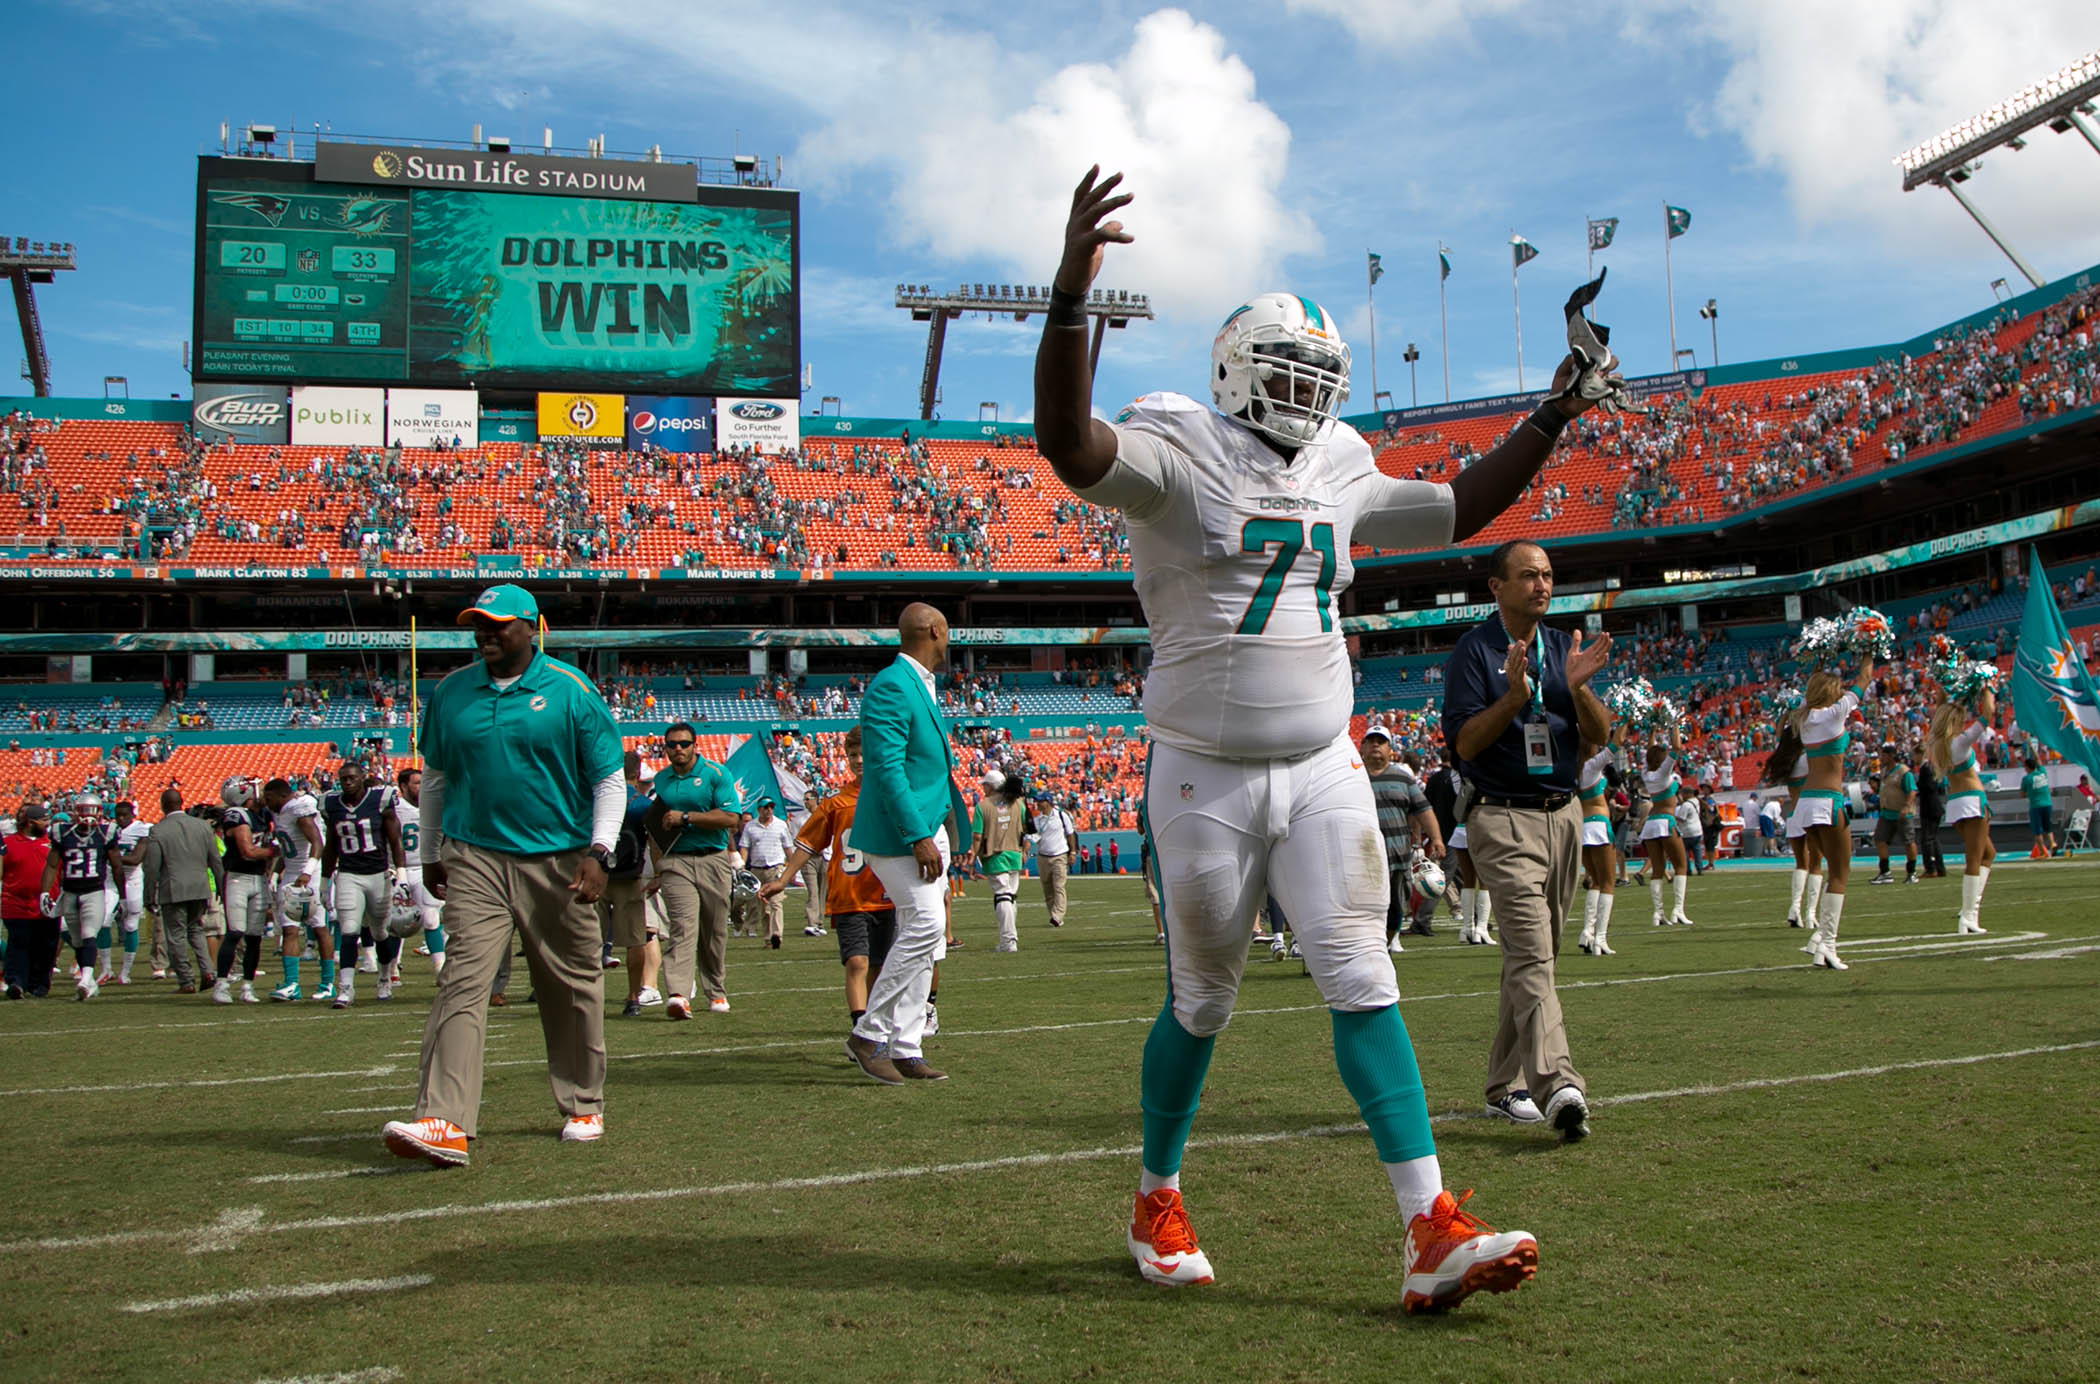 Miami Dolphins tackle Branden Albert (71) exits the field after Dolphins win over Patriots at Sun Life Stadium in Miami Gardens, Florida on September 7, 2014. (Allen Eyestone / The Palm Beach Post)